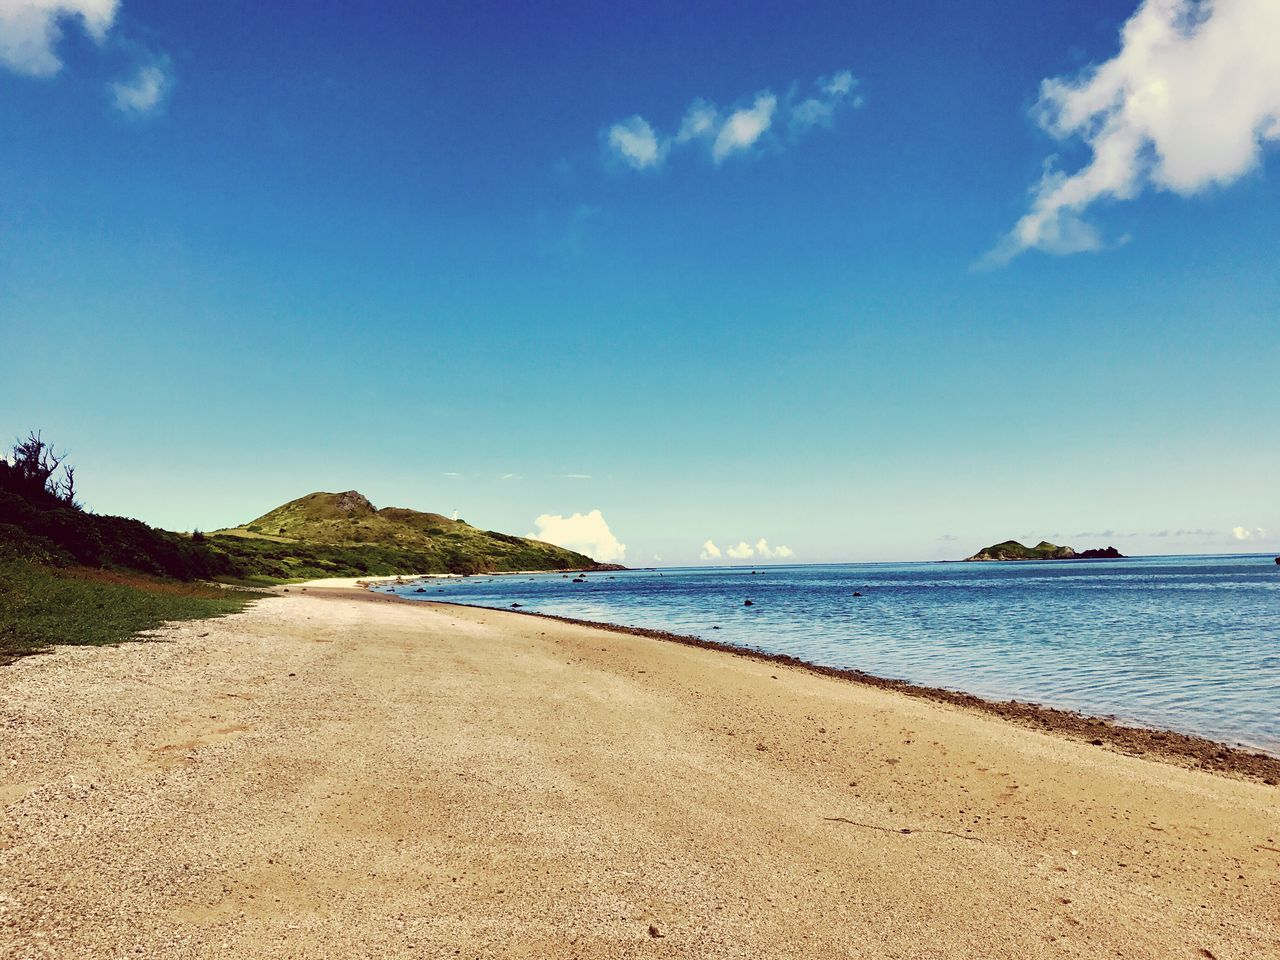 sea, beach, scenics, tranquil scene, sky, blue, sand, beauty in nature, nature, tranquility, outdoors, water, no people, day, the way forward, landscape, travel destinations, horizon over water, tree